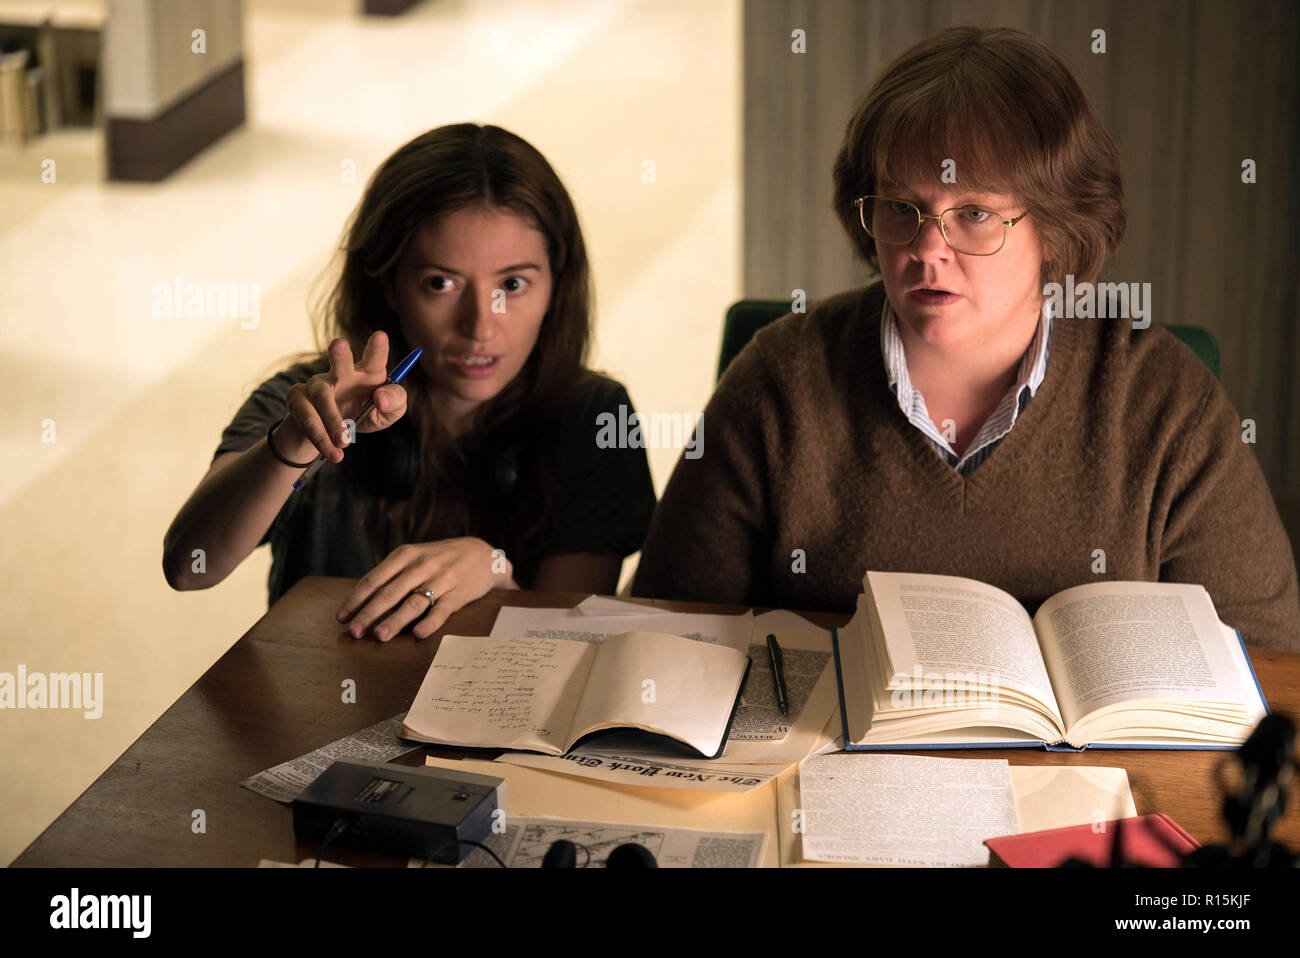 Prod DB © Mary Cybulski - Fox Searchlight Pictures - Archer Gray / DR CAN YOU EVER FORGIVE ME ? de Marielle Heller 2018 USA Marielle Heller Melissa Mc - Stock Image